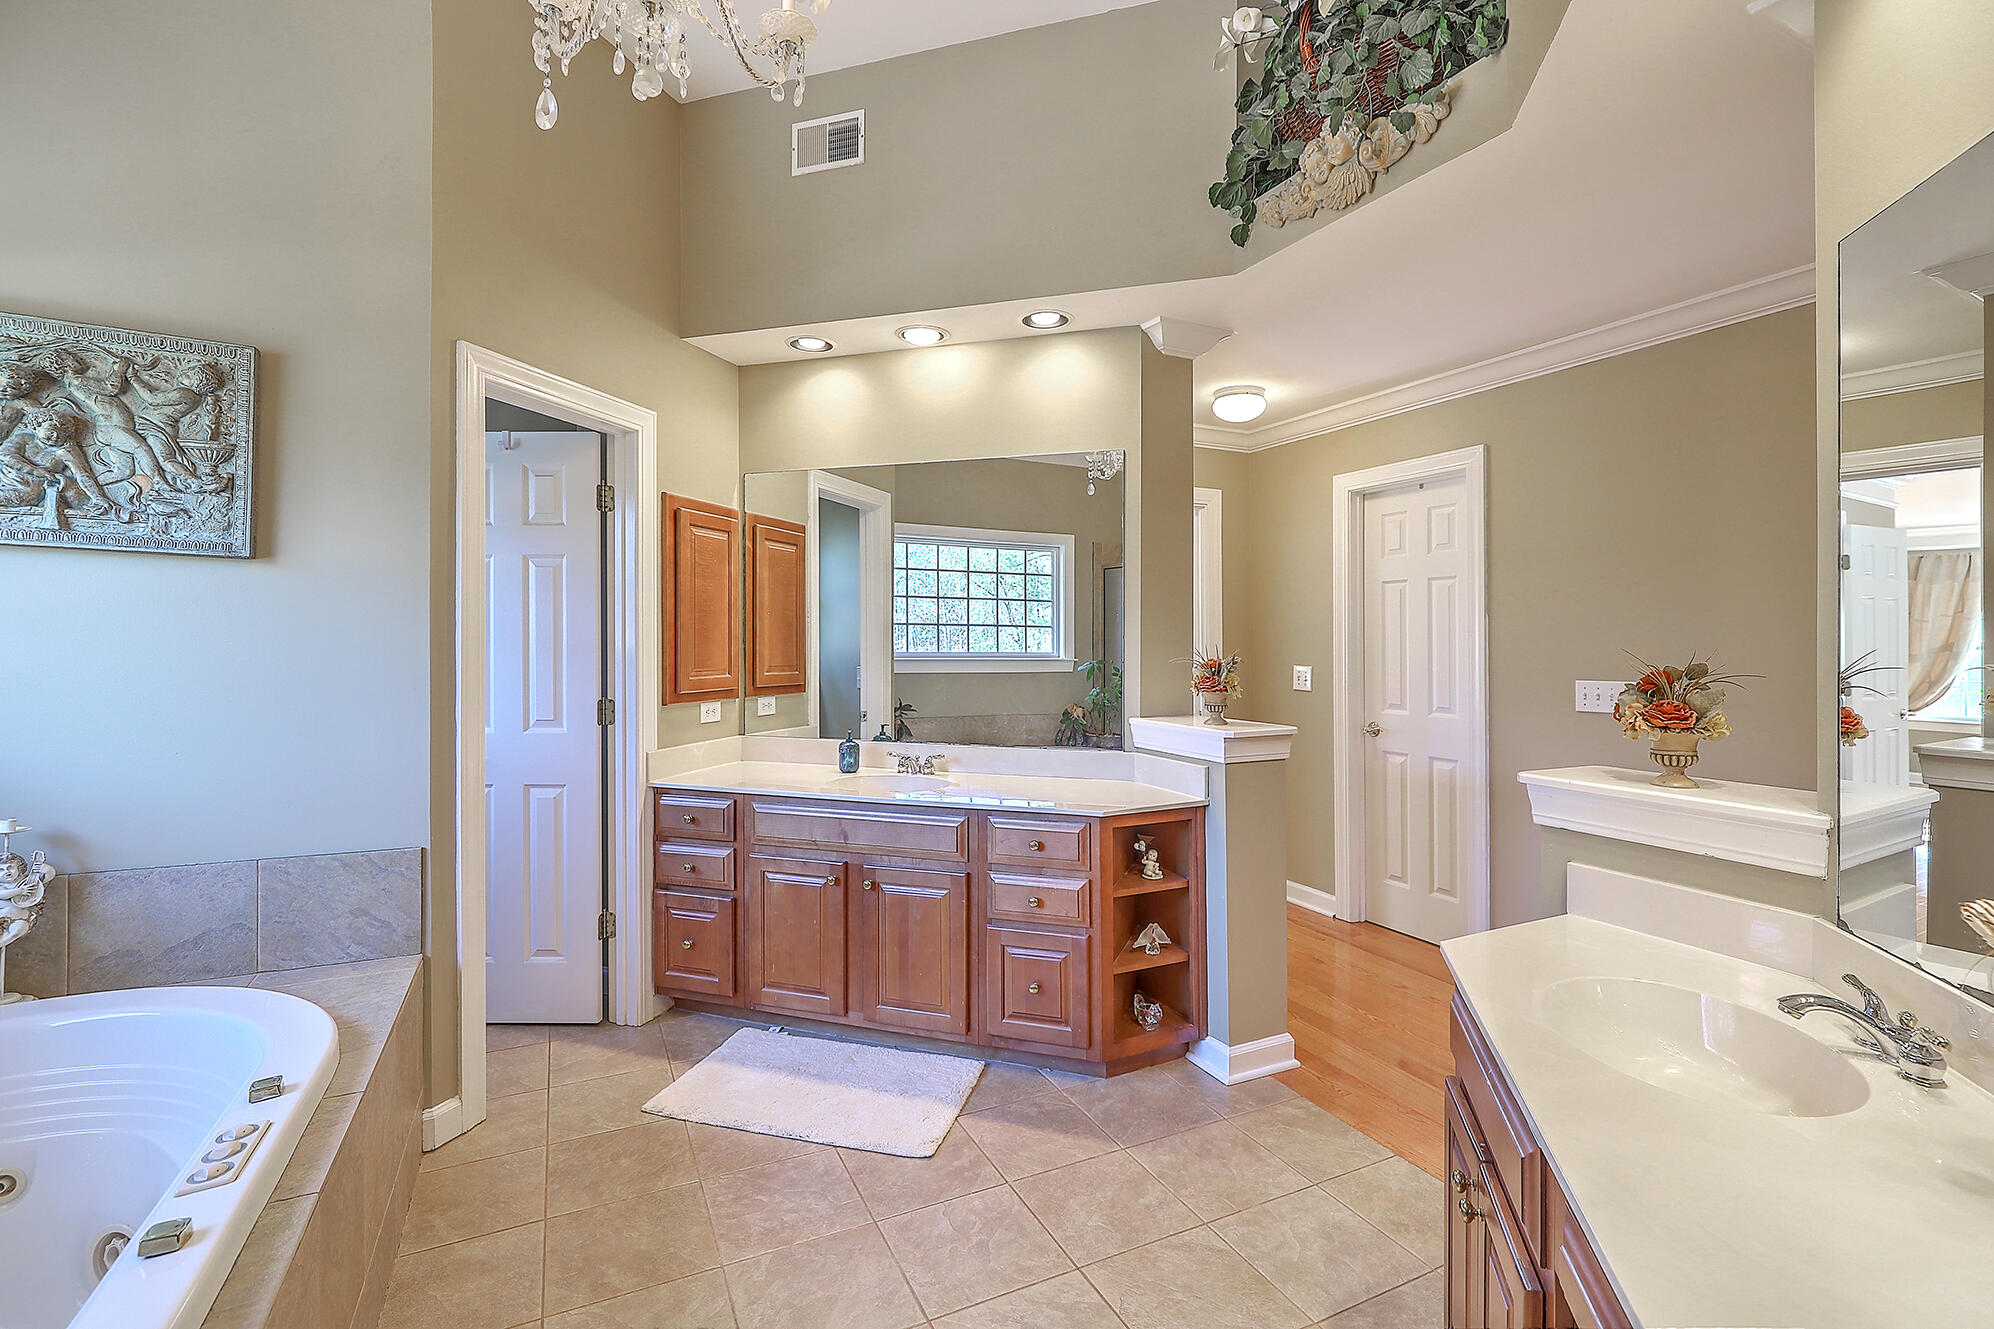 Dunes West Homes For Sale - 1784 Shell Ring Circle, Mount Pleasant, SC - 33